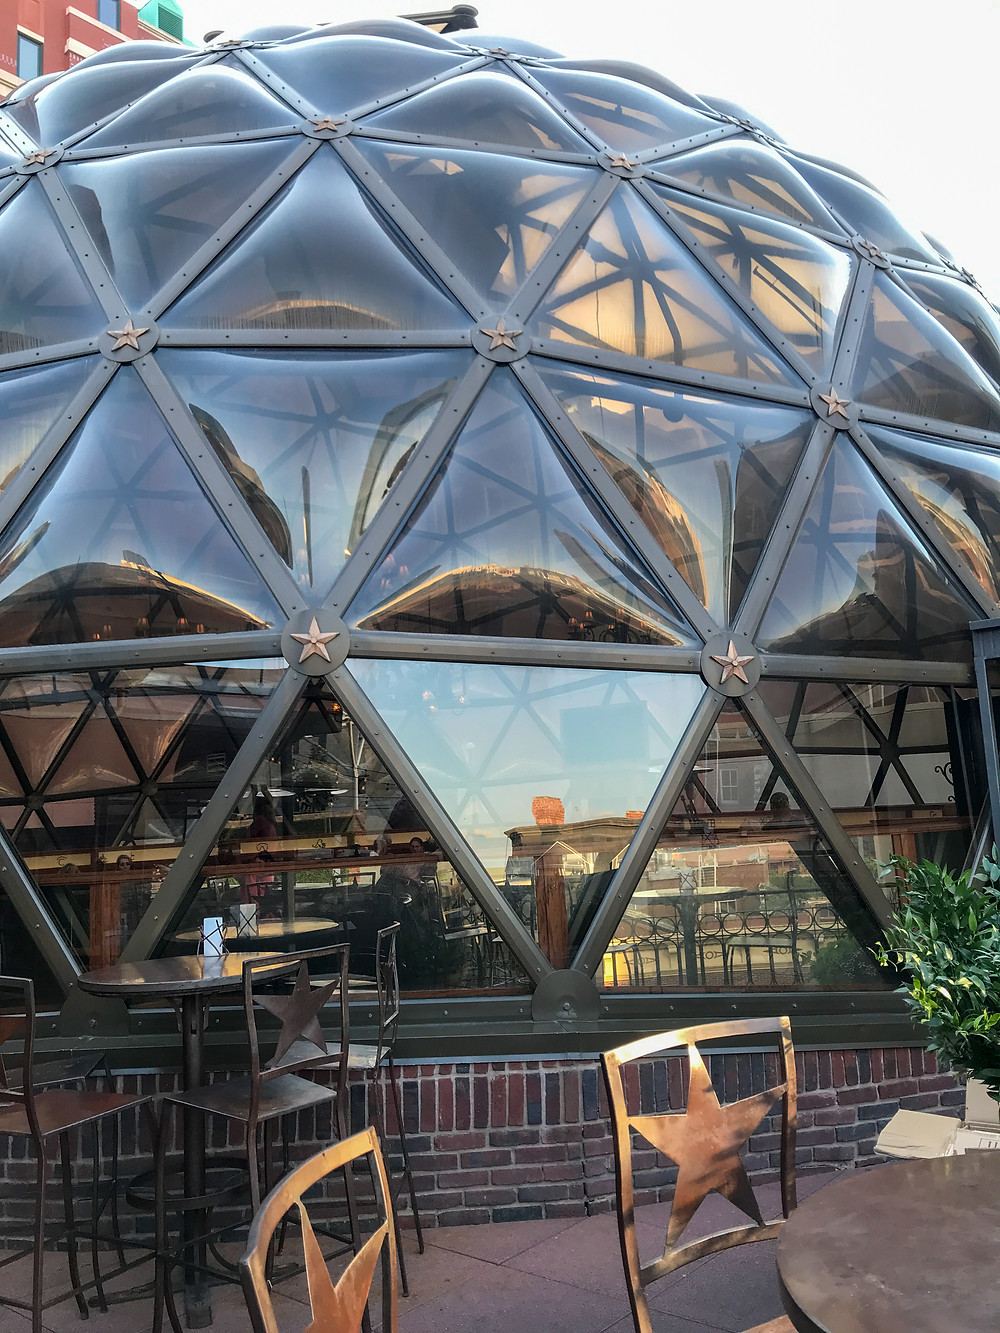 Jazz guitar in the geodesic dome